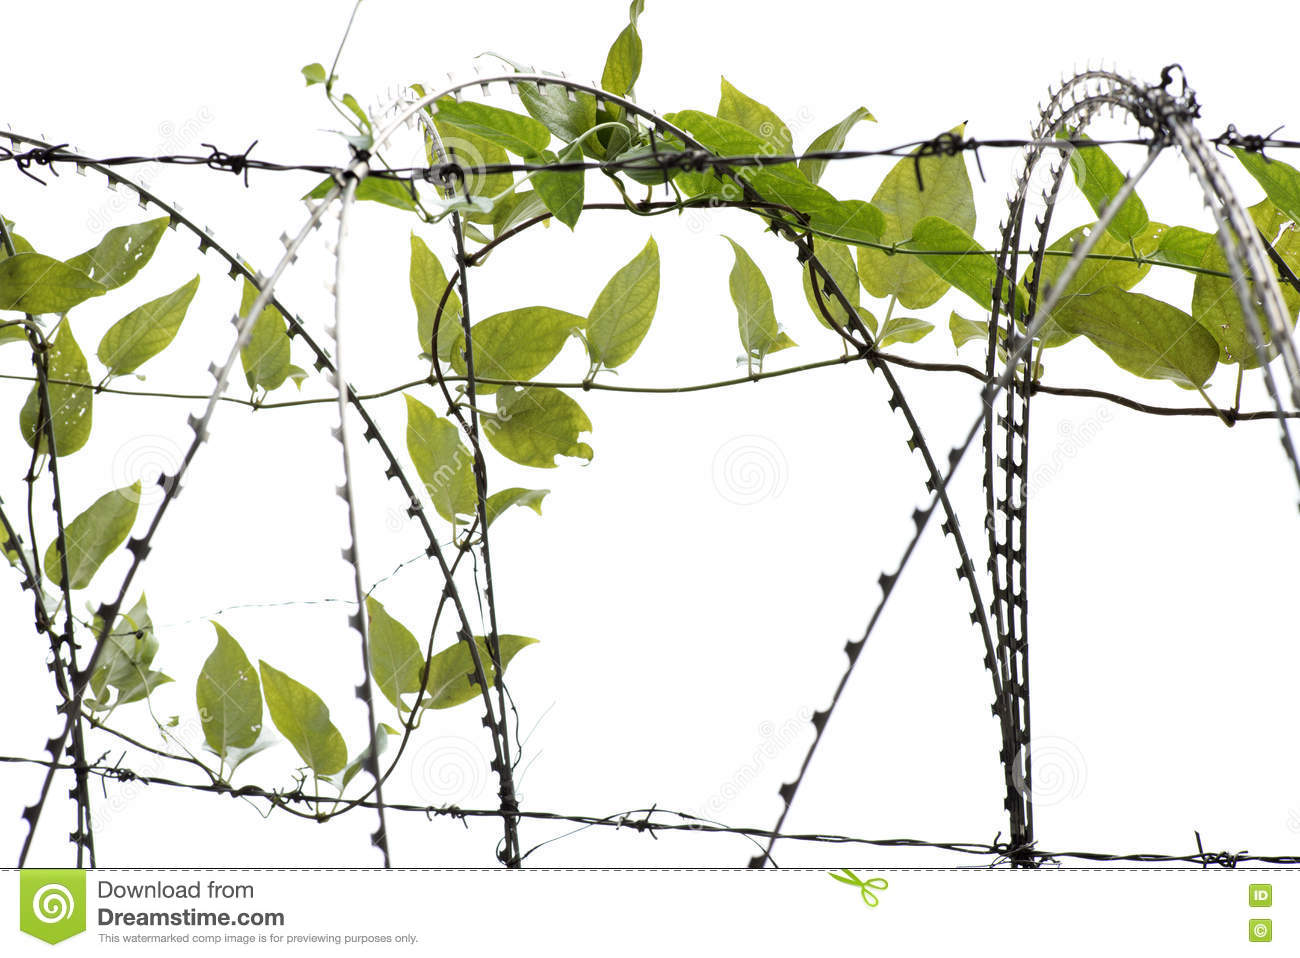 Green ivy vine leaves stock photo. Image of barb, industry - 77282380